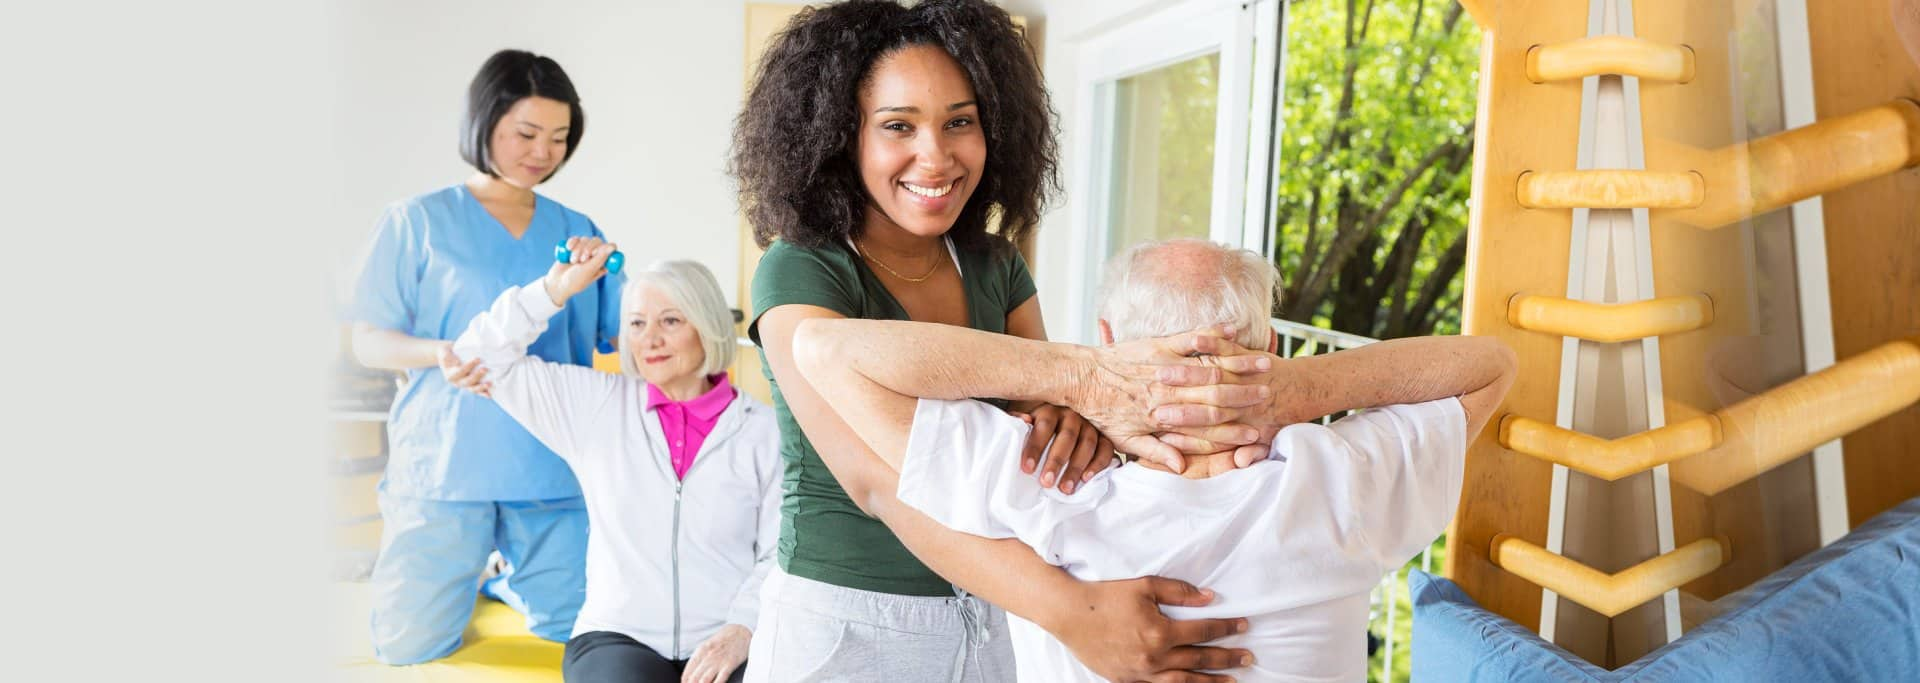 elderly people exercising and caregiver assisting them